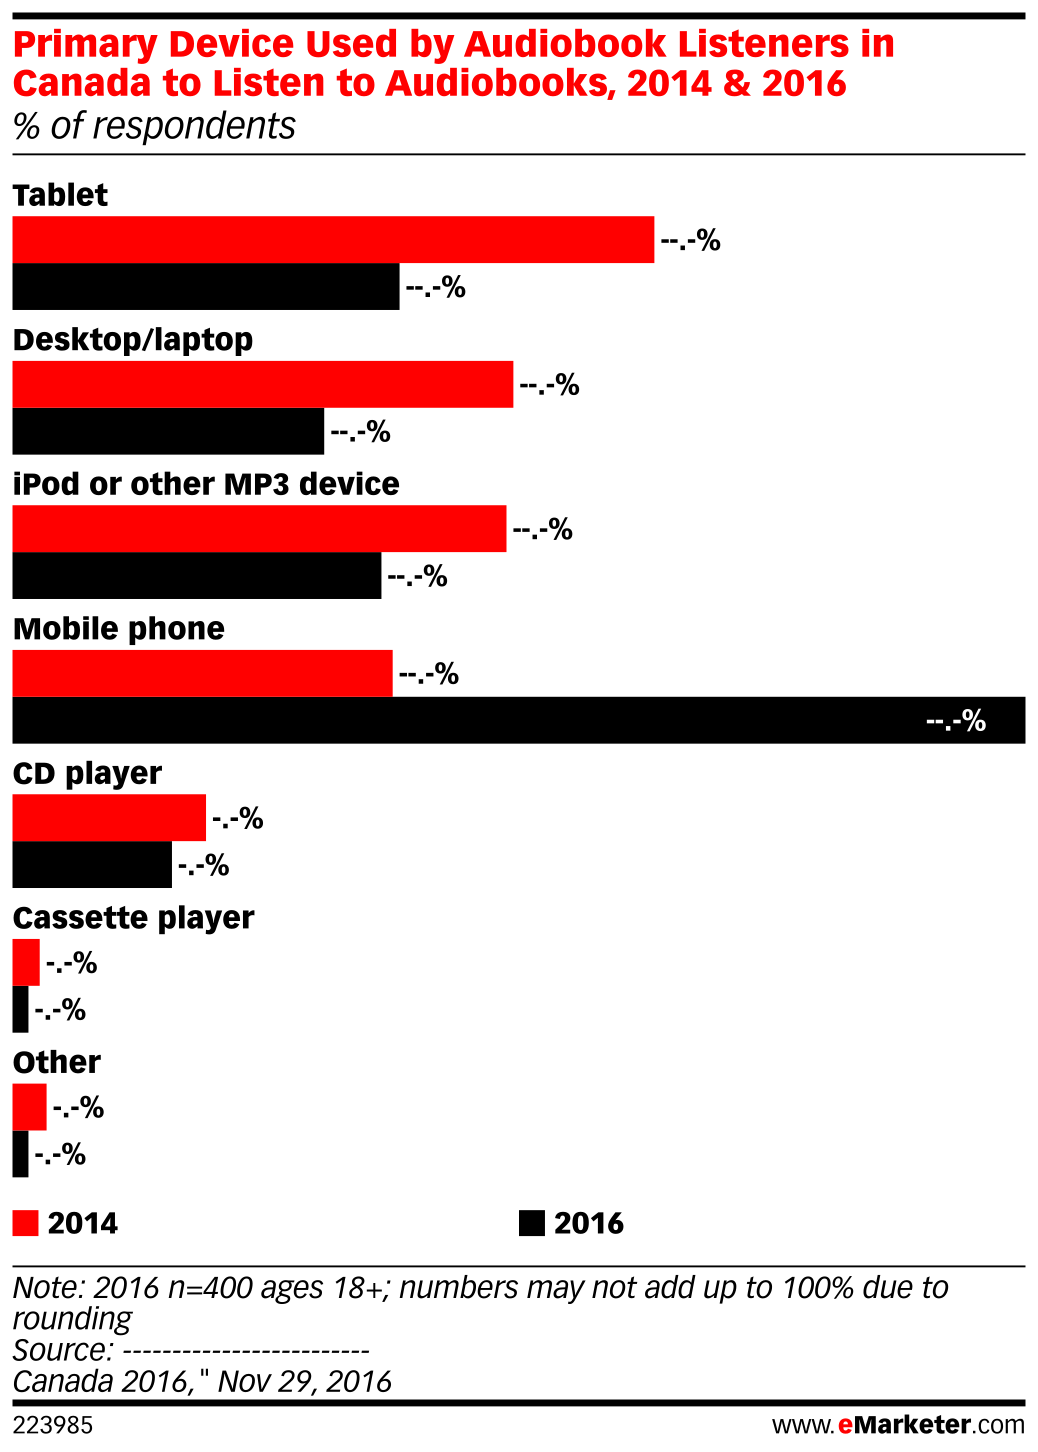 Primary Device Used by Audiobook Listeners in Canada to Listen to Audiobooks, 2014 & 2016 (% of respondents)